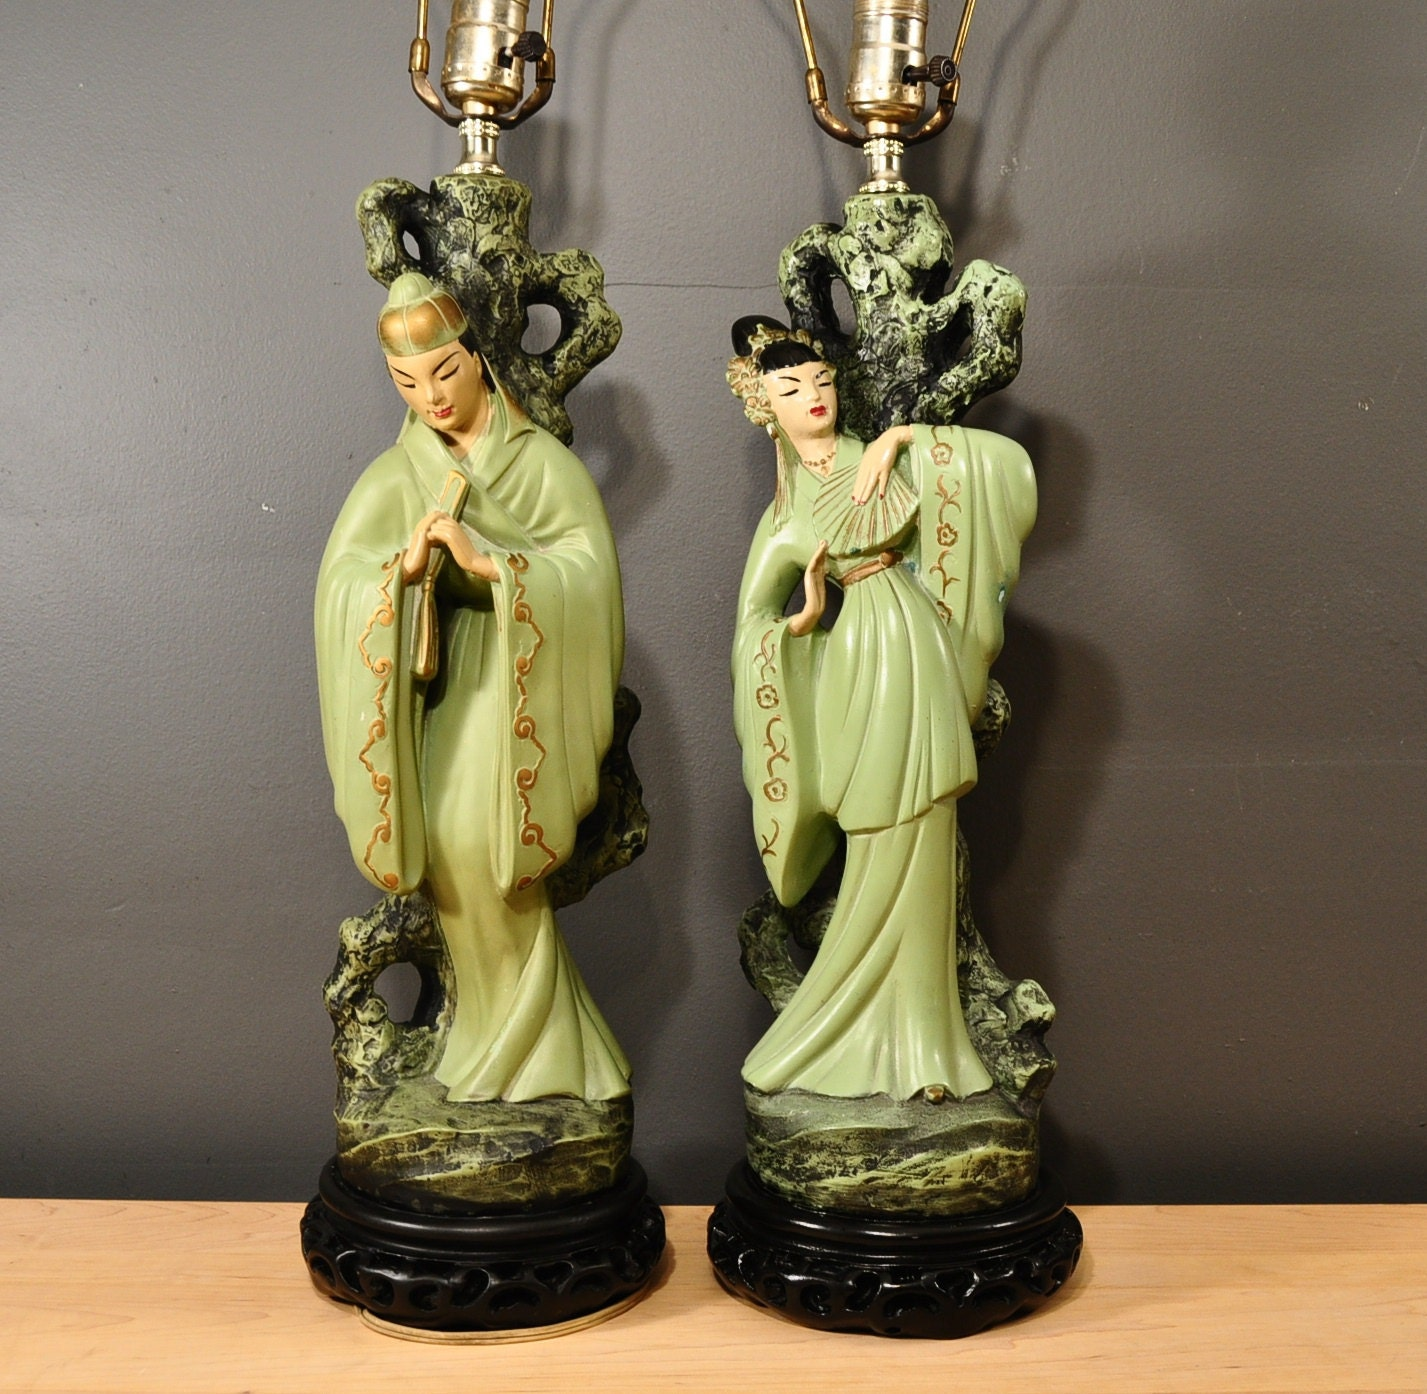 Whoa Age Swap On A Few Of Them There That Would Be: Pair Of Vintage Asian Chalkware Lamps